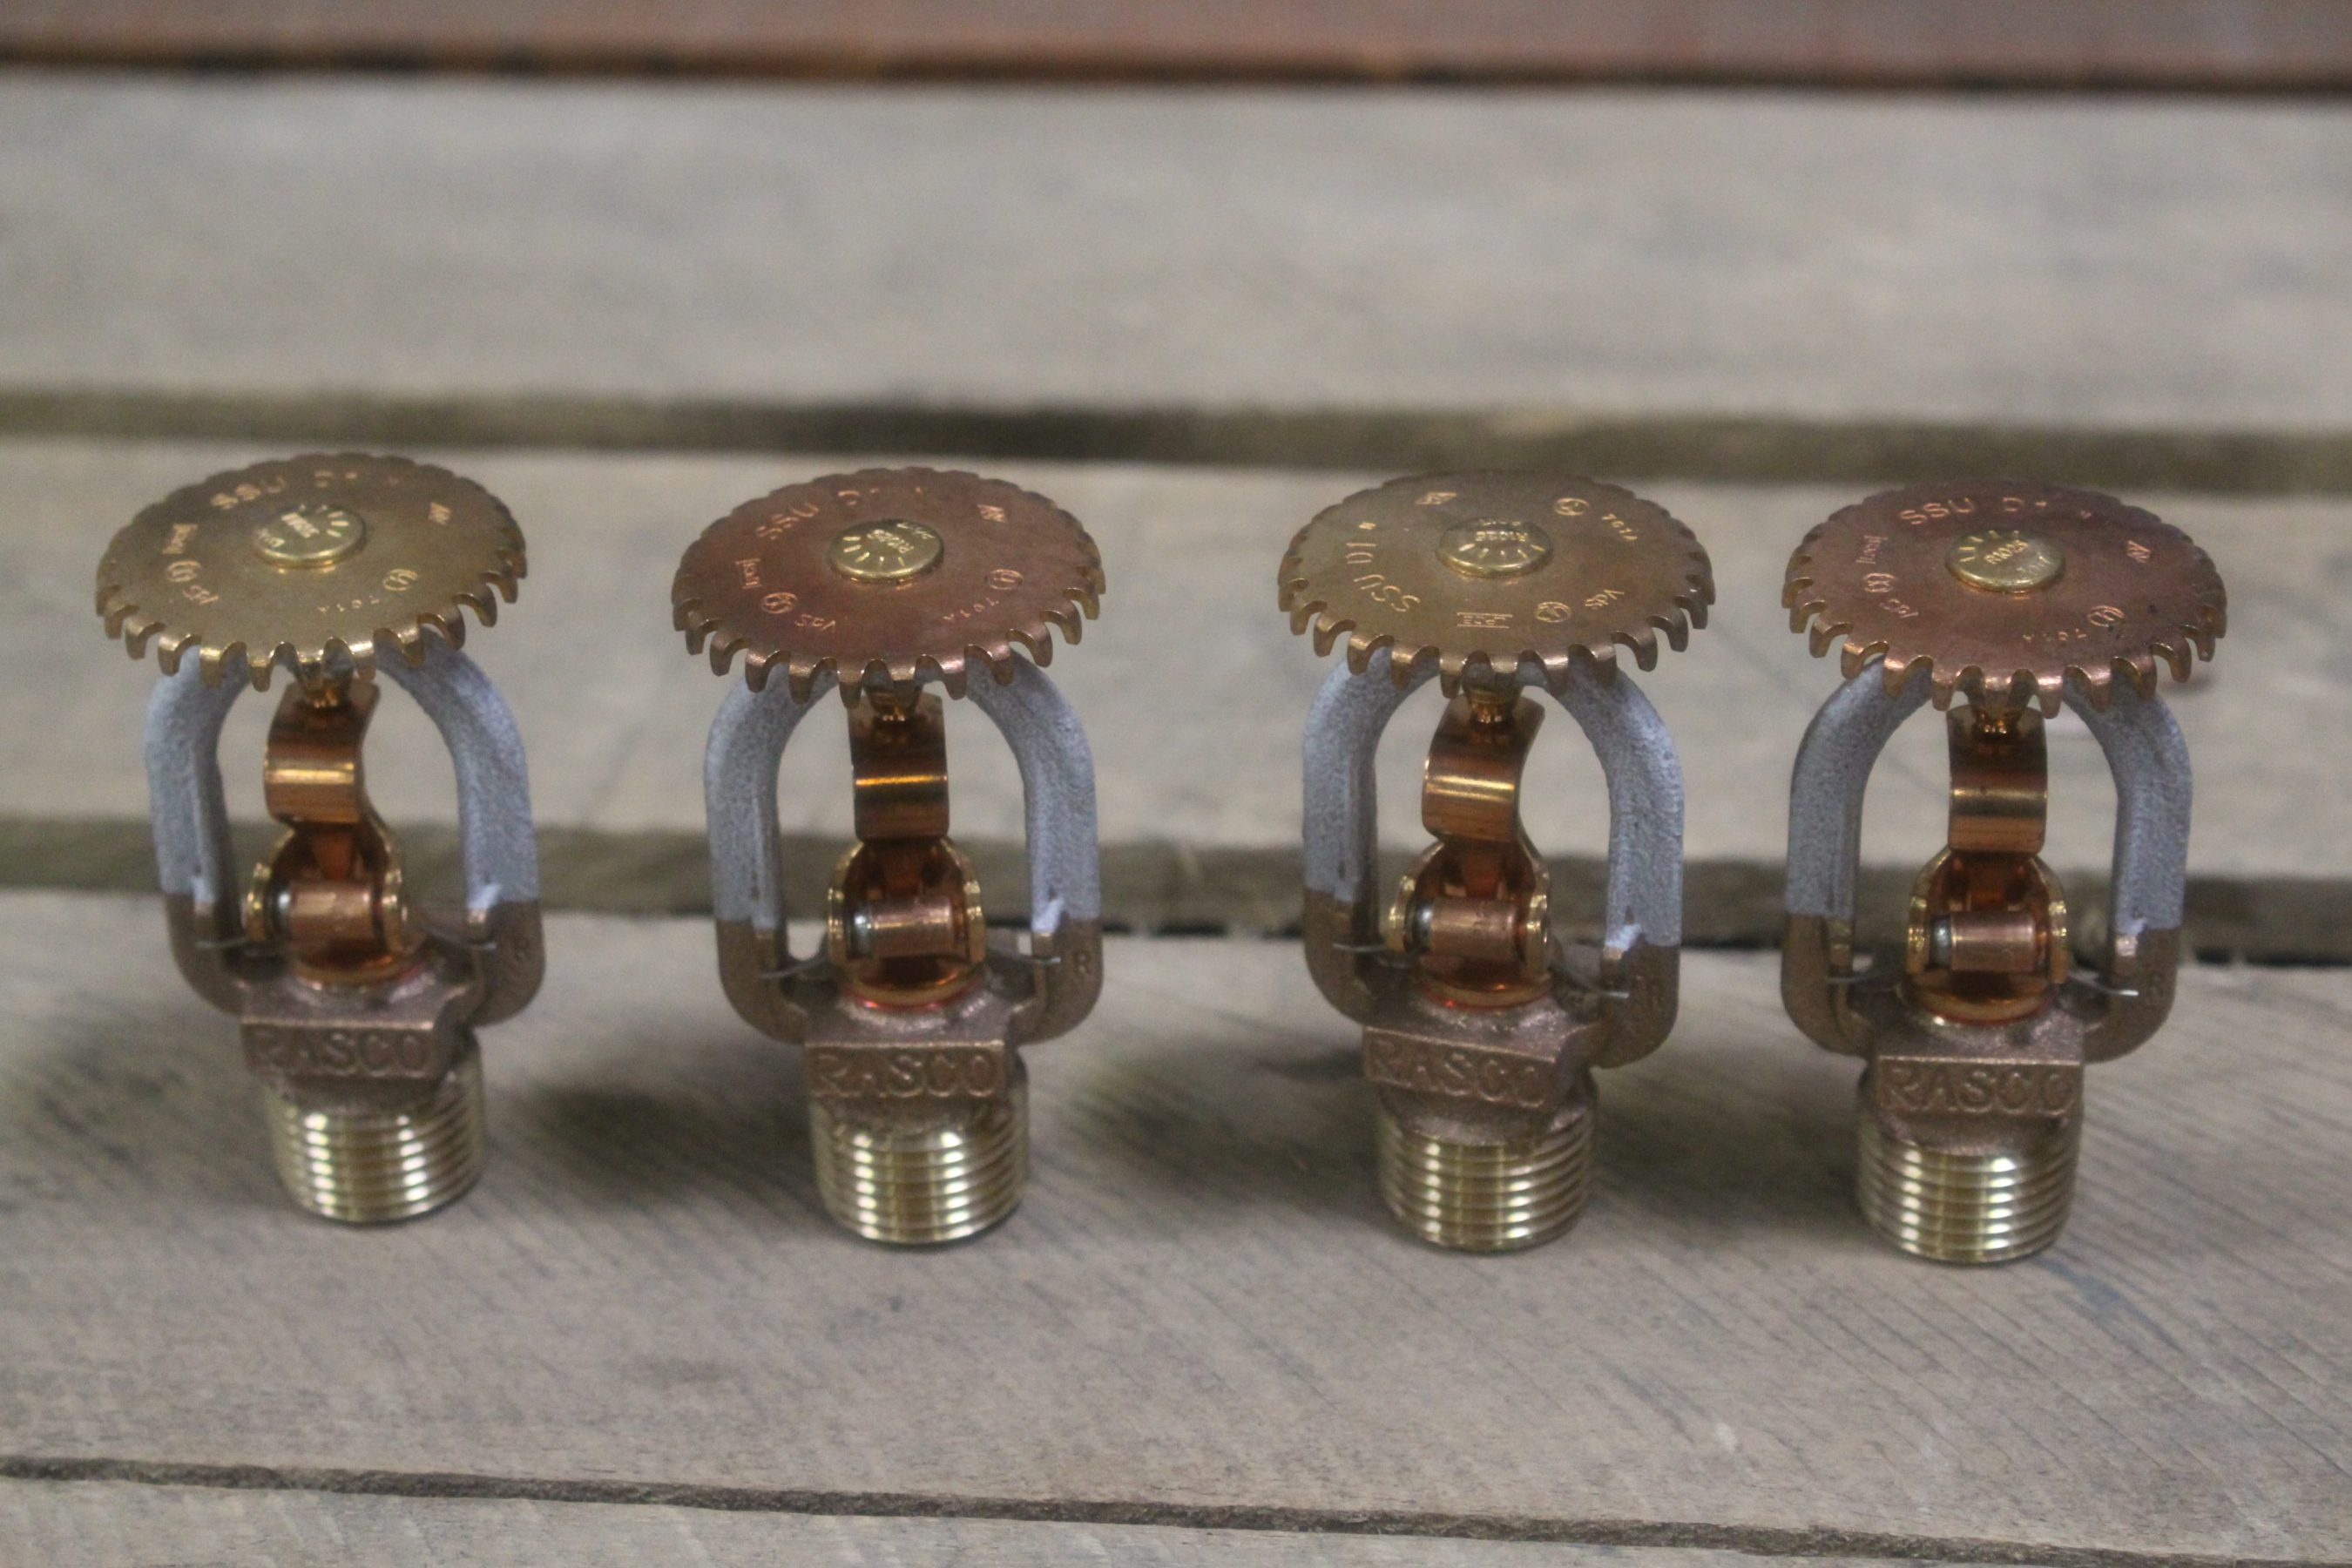 10 most common myths about commercial fire sprinklers